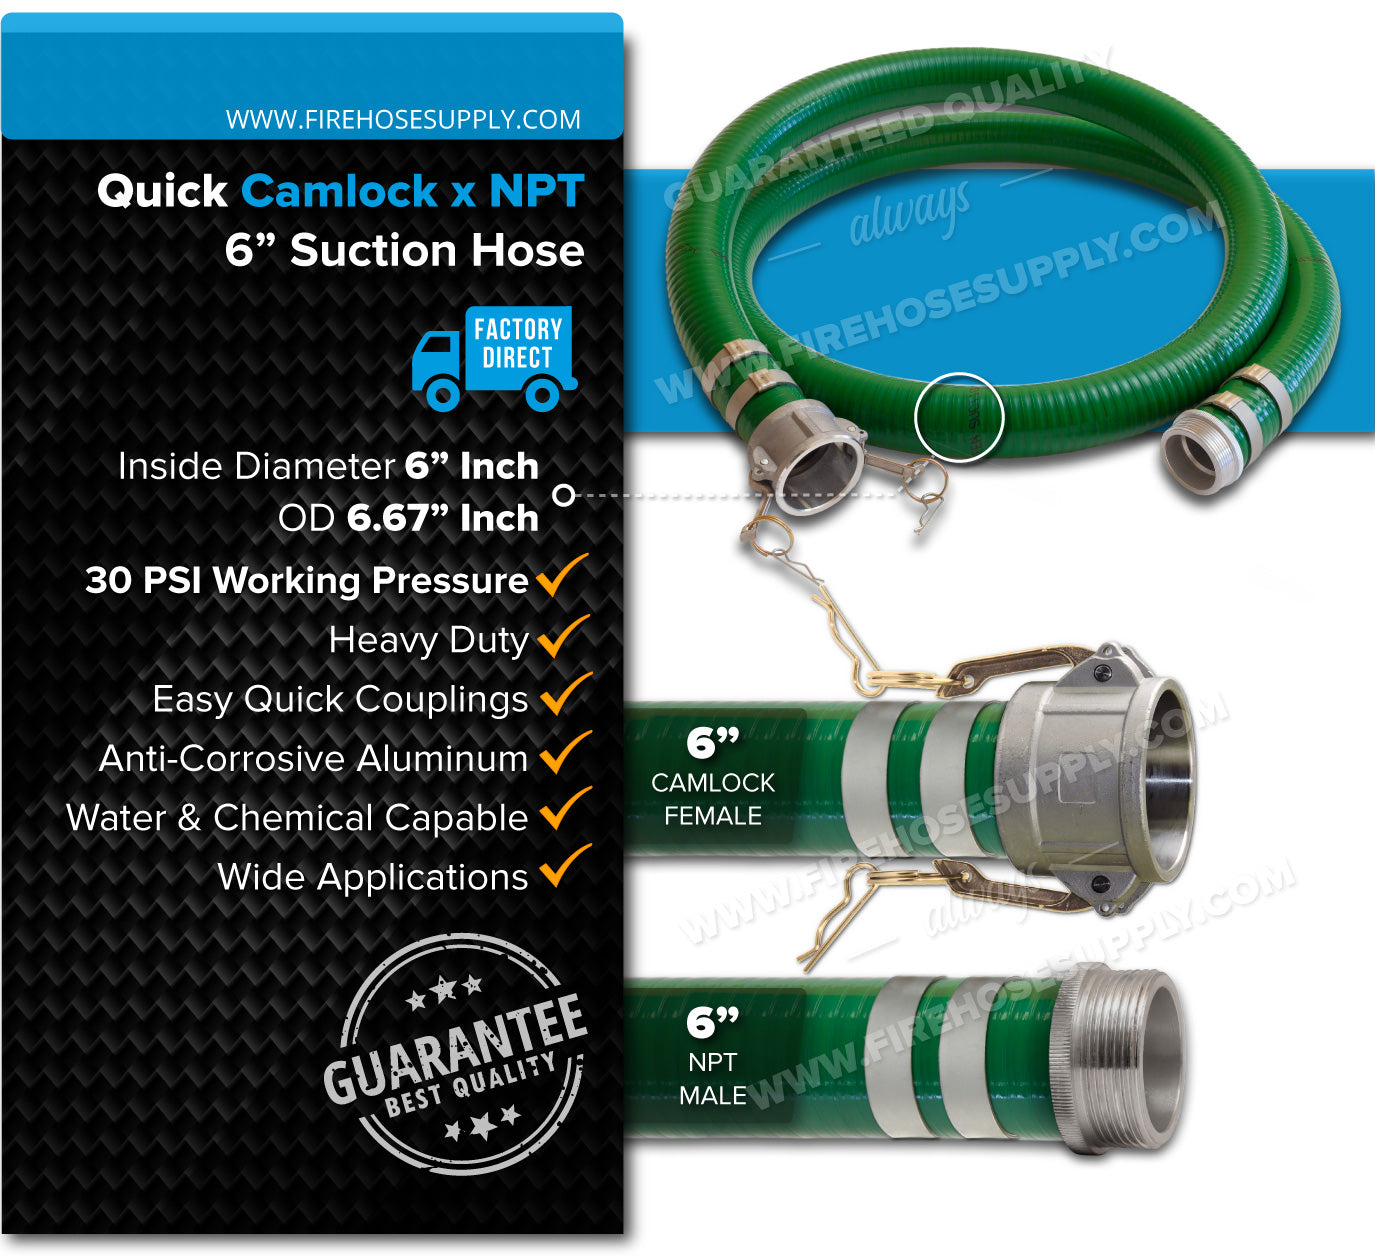 6 Inch Camlock Female x NPT Male Green Suction Hose Overview